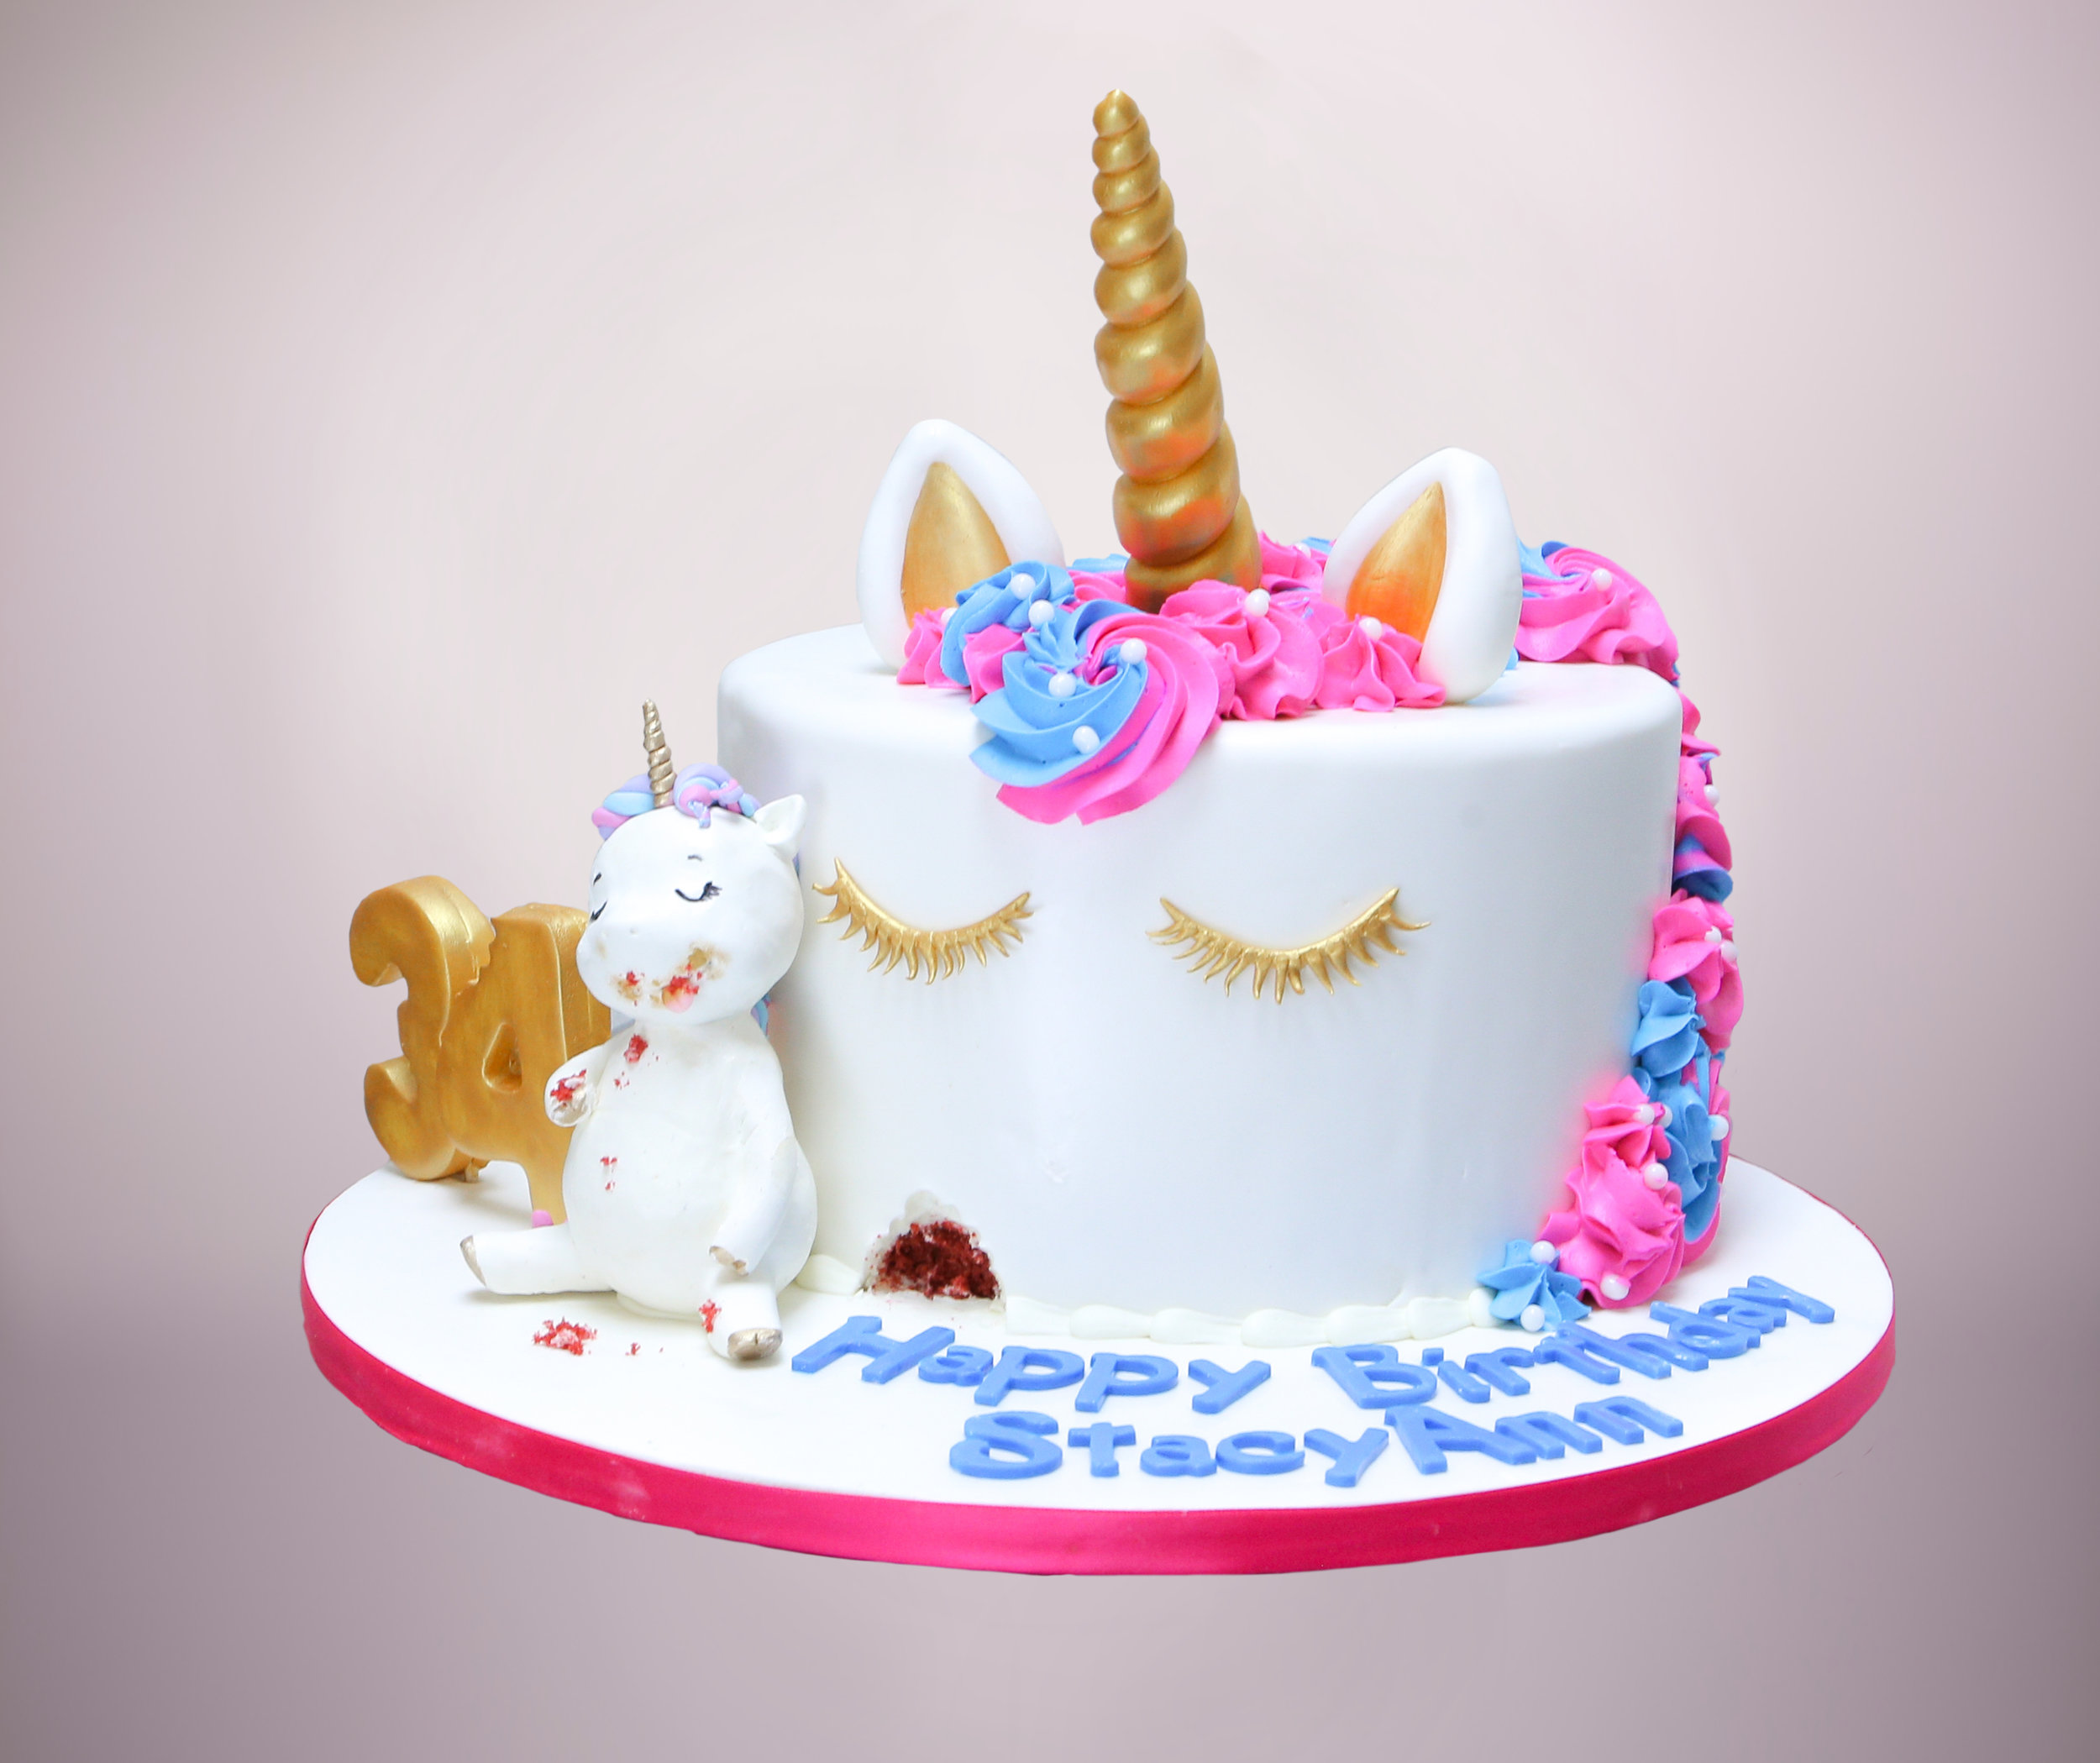 Custom_Birthday_UnicornMiniUnicorn.jpg